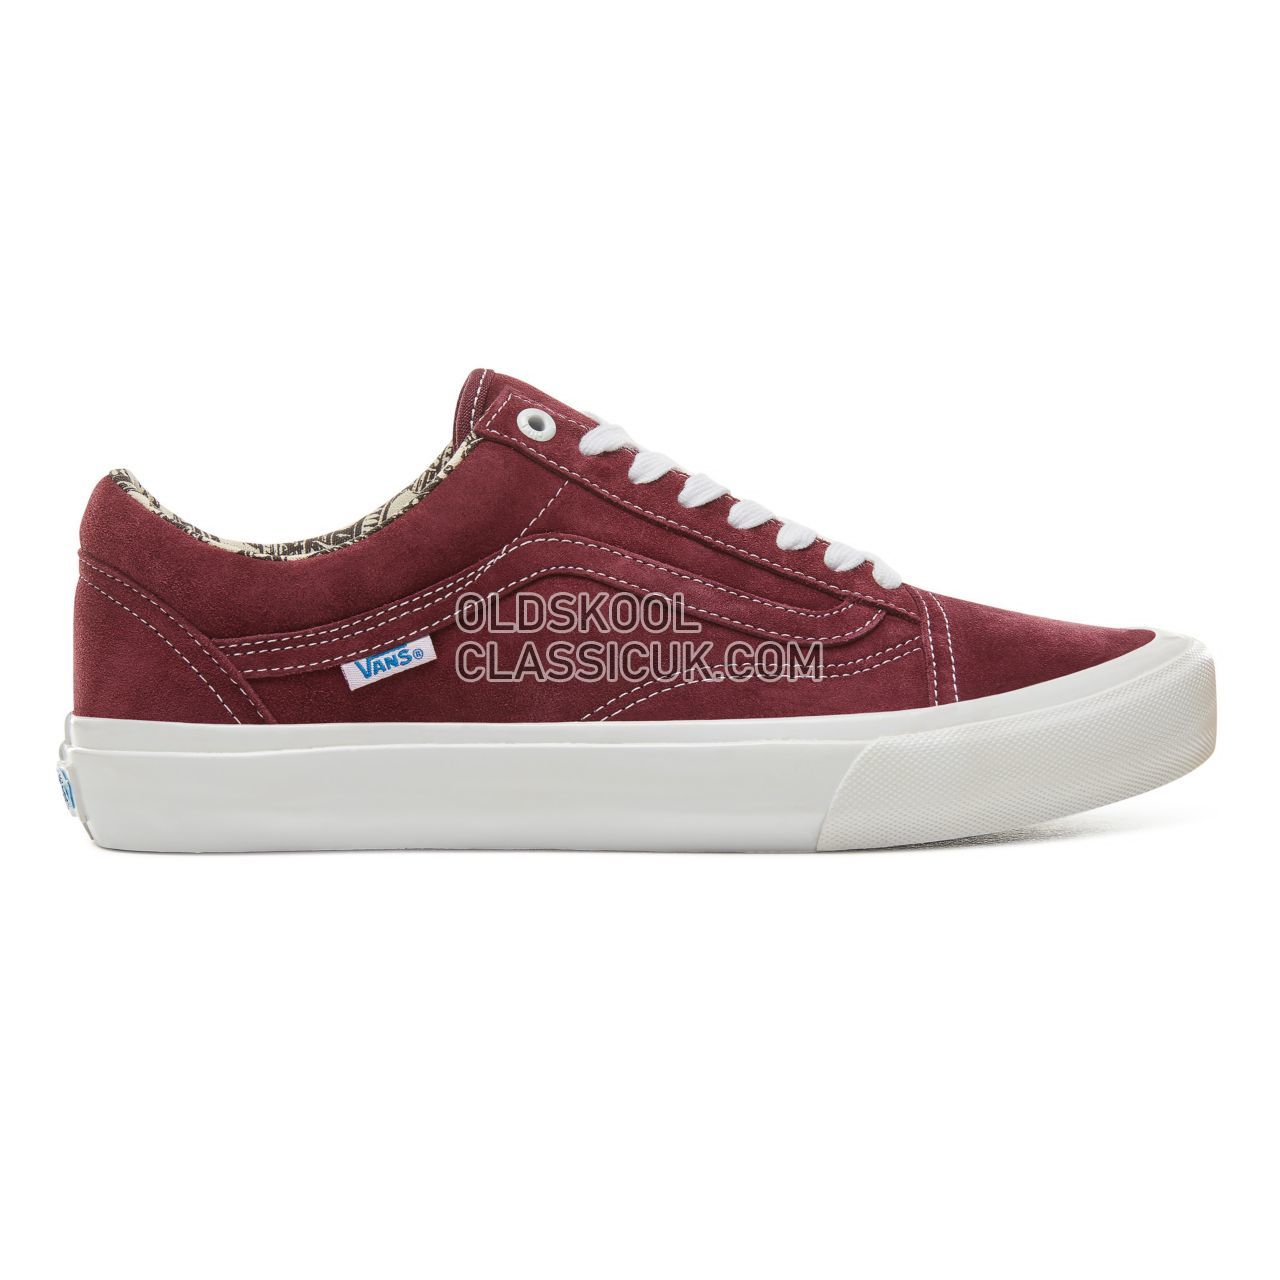 100% original in stock enjoy bottom price Vans Ray Barbee Old Skool Pro Sneakers Mens Womens Unisex ...